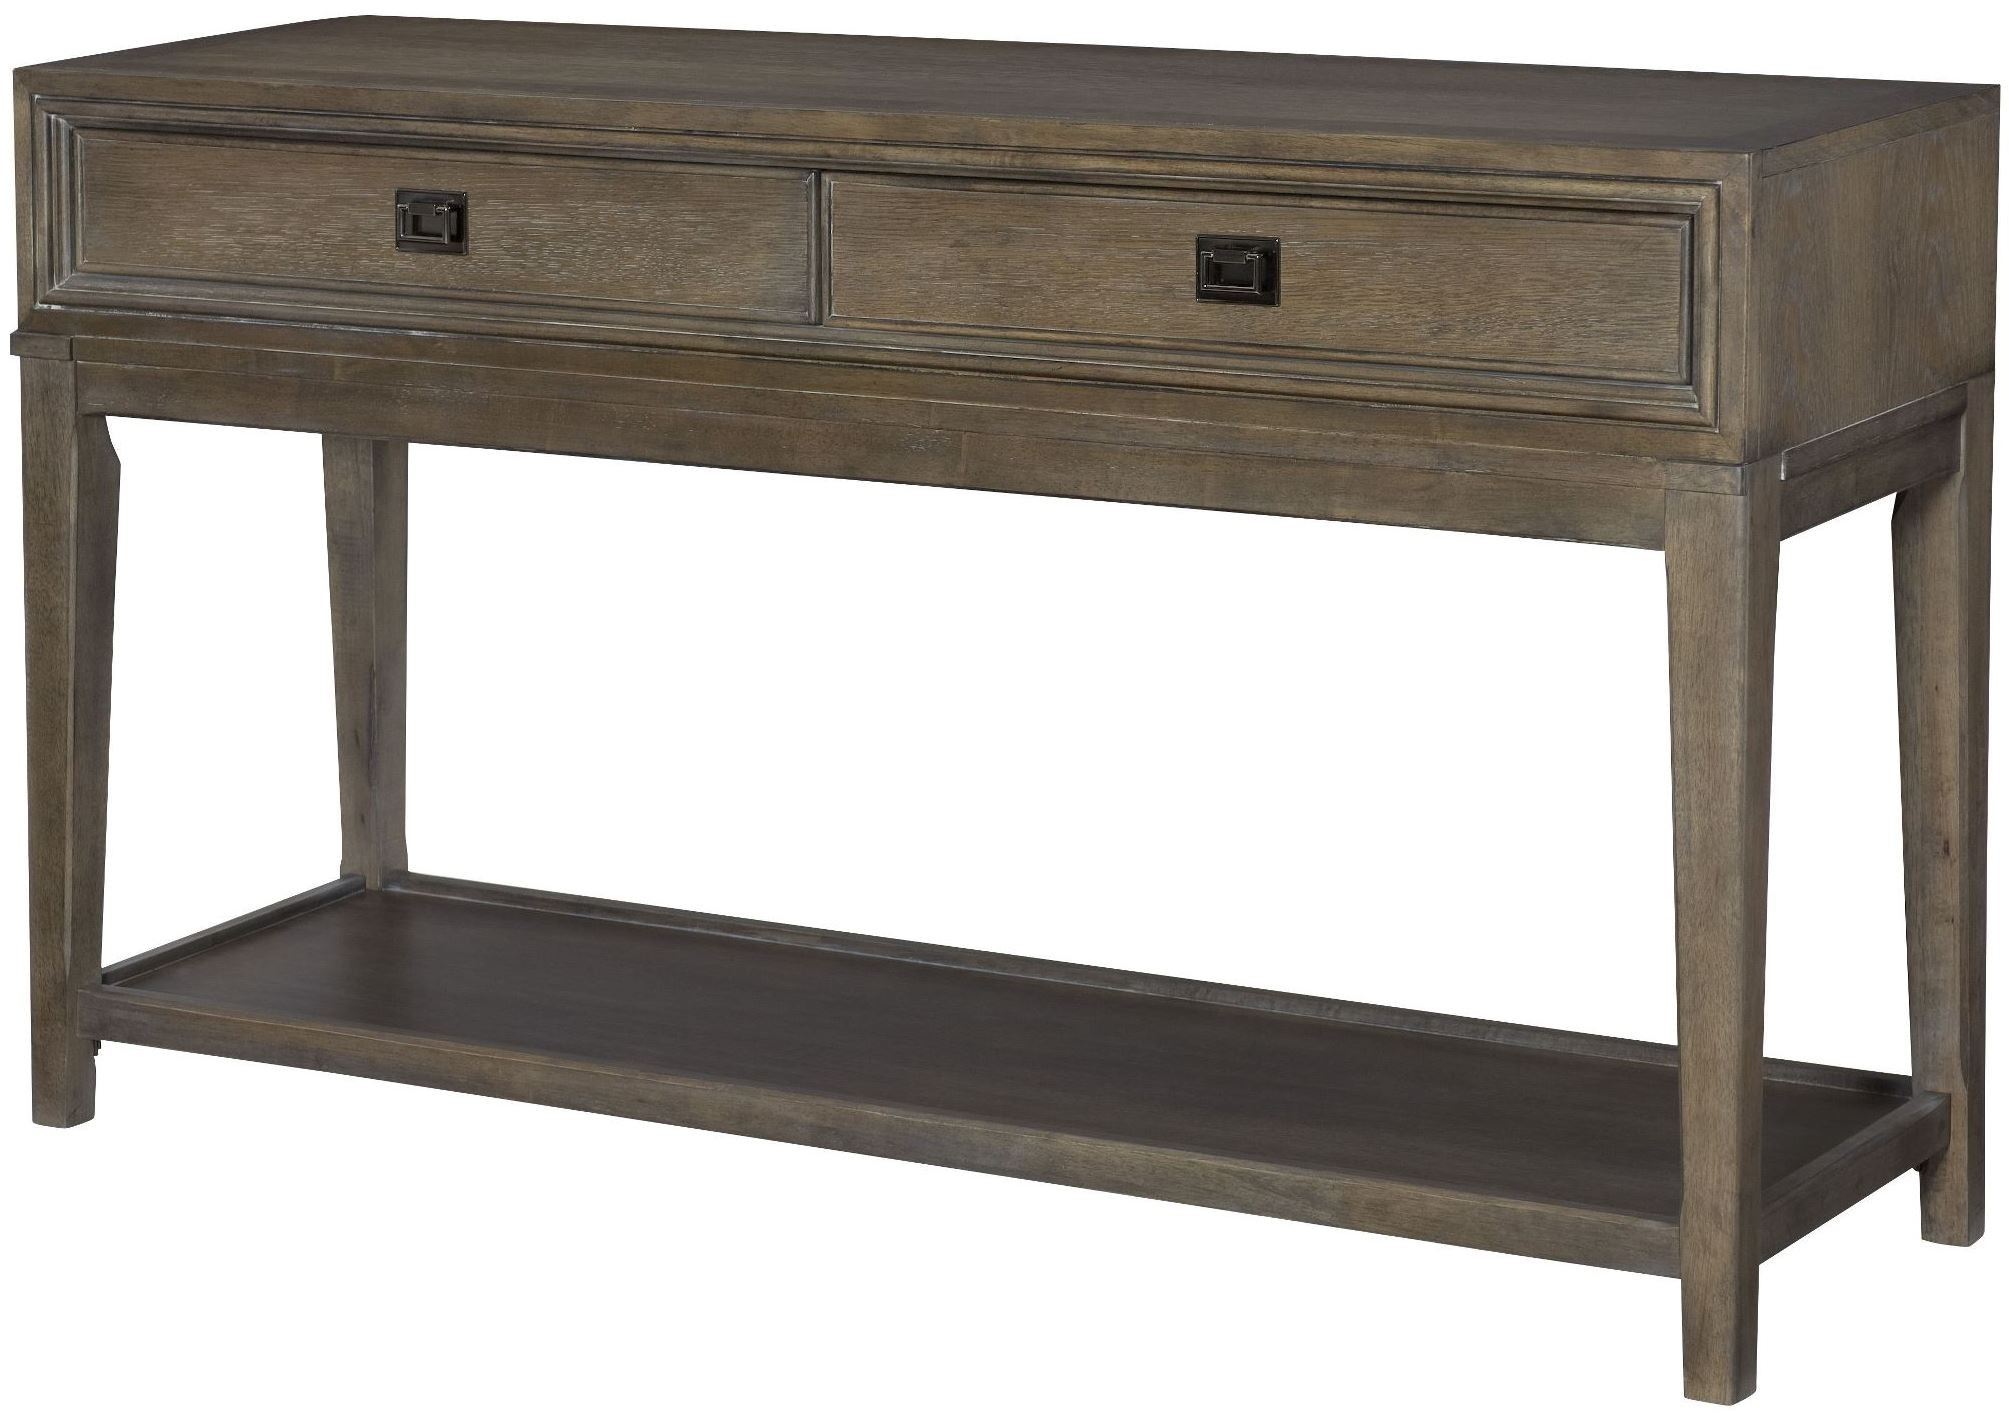 Park studio weathered taupe console table from american for Console salon